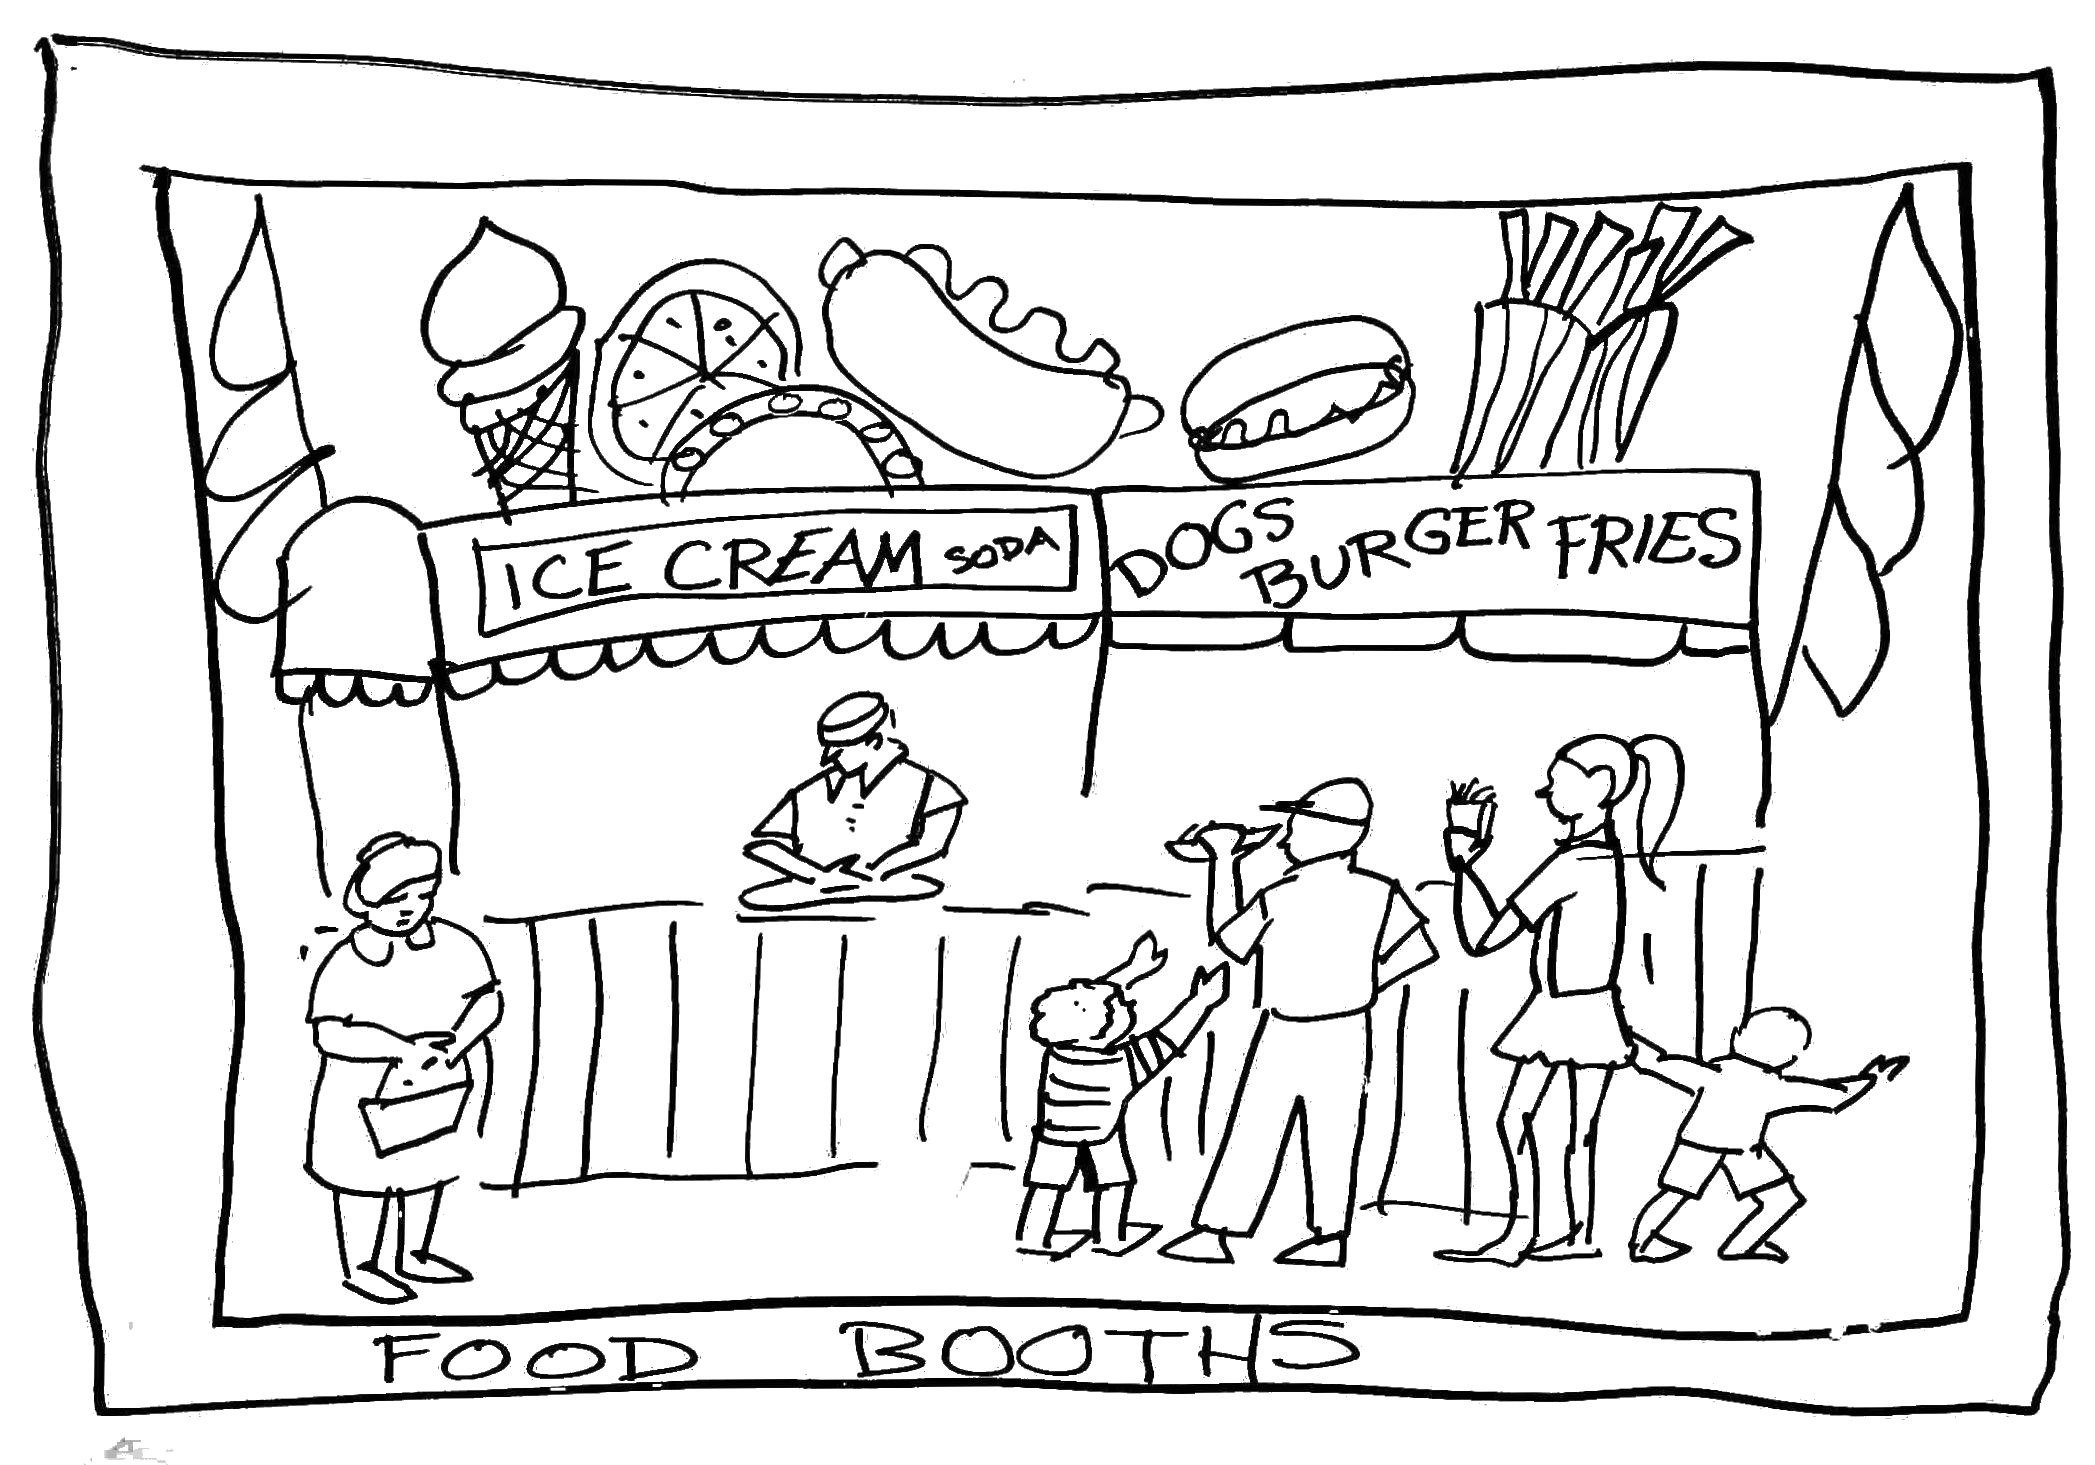 fun fair coloring pages - photo#22